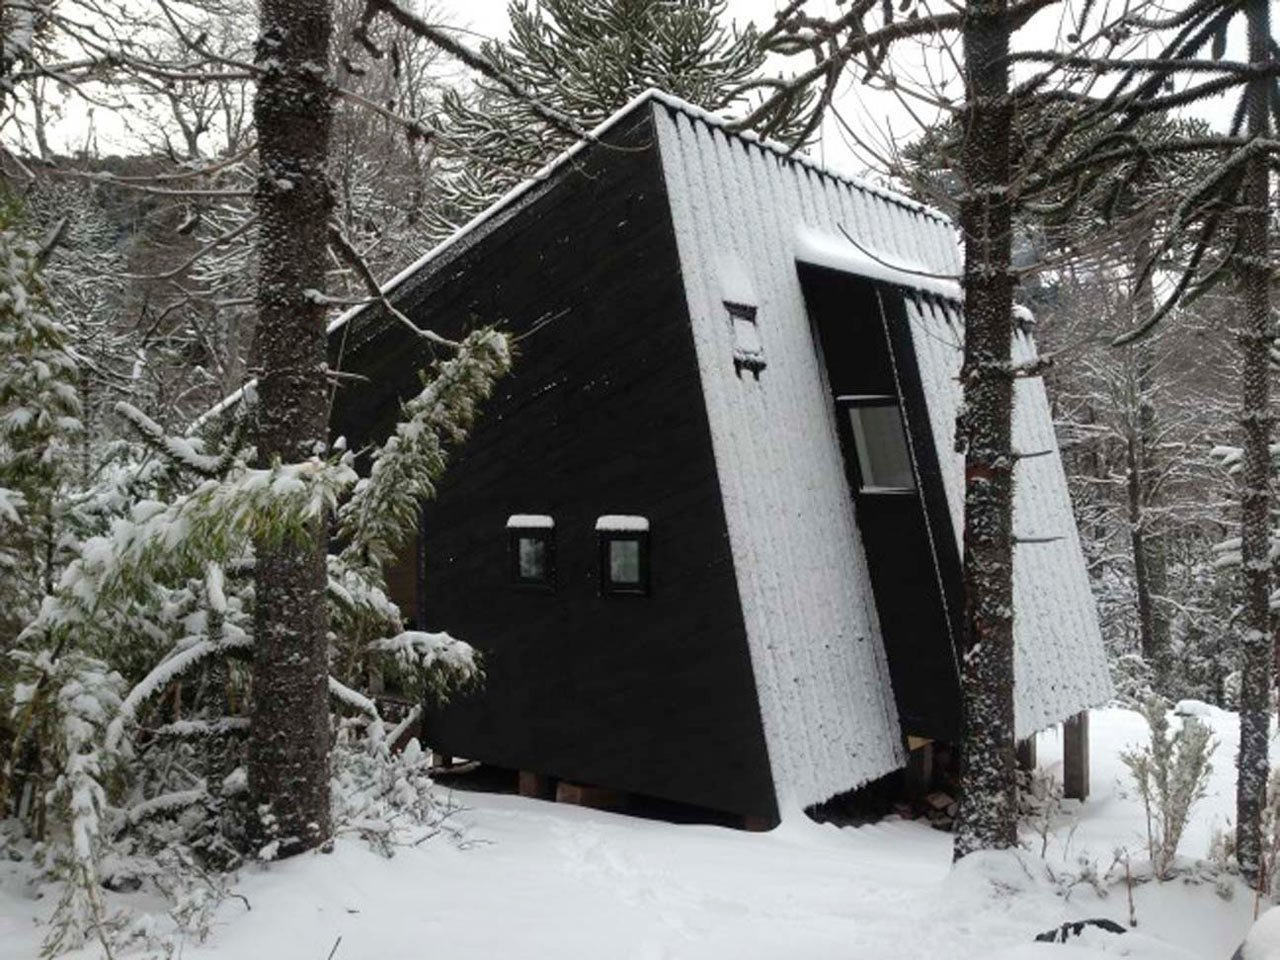 This winter retreat located in a forest in the Araucanía Region of Chile was designed by MC2 Arquitectos to face a small waterfall. One side features a large window, while the other walls has smaller windows that focus on specific views and provide ventilation for the house. Its painted brown exterior helps it blend into the surrounding landscape. 10 Modern Wintry Cabins We'd Be Happy to Hole Up In - Photo 7 of 11